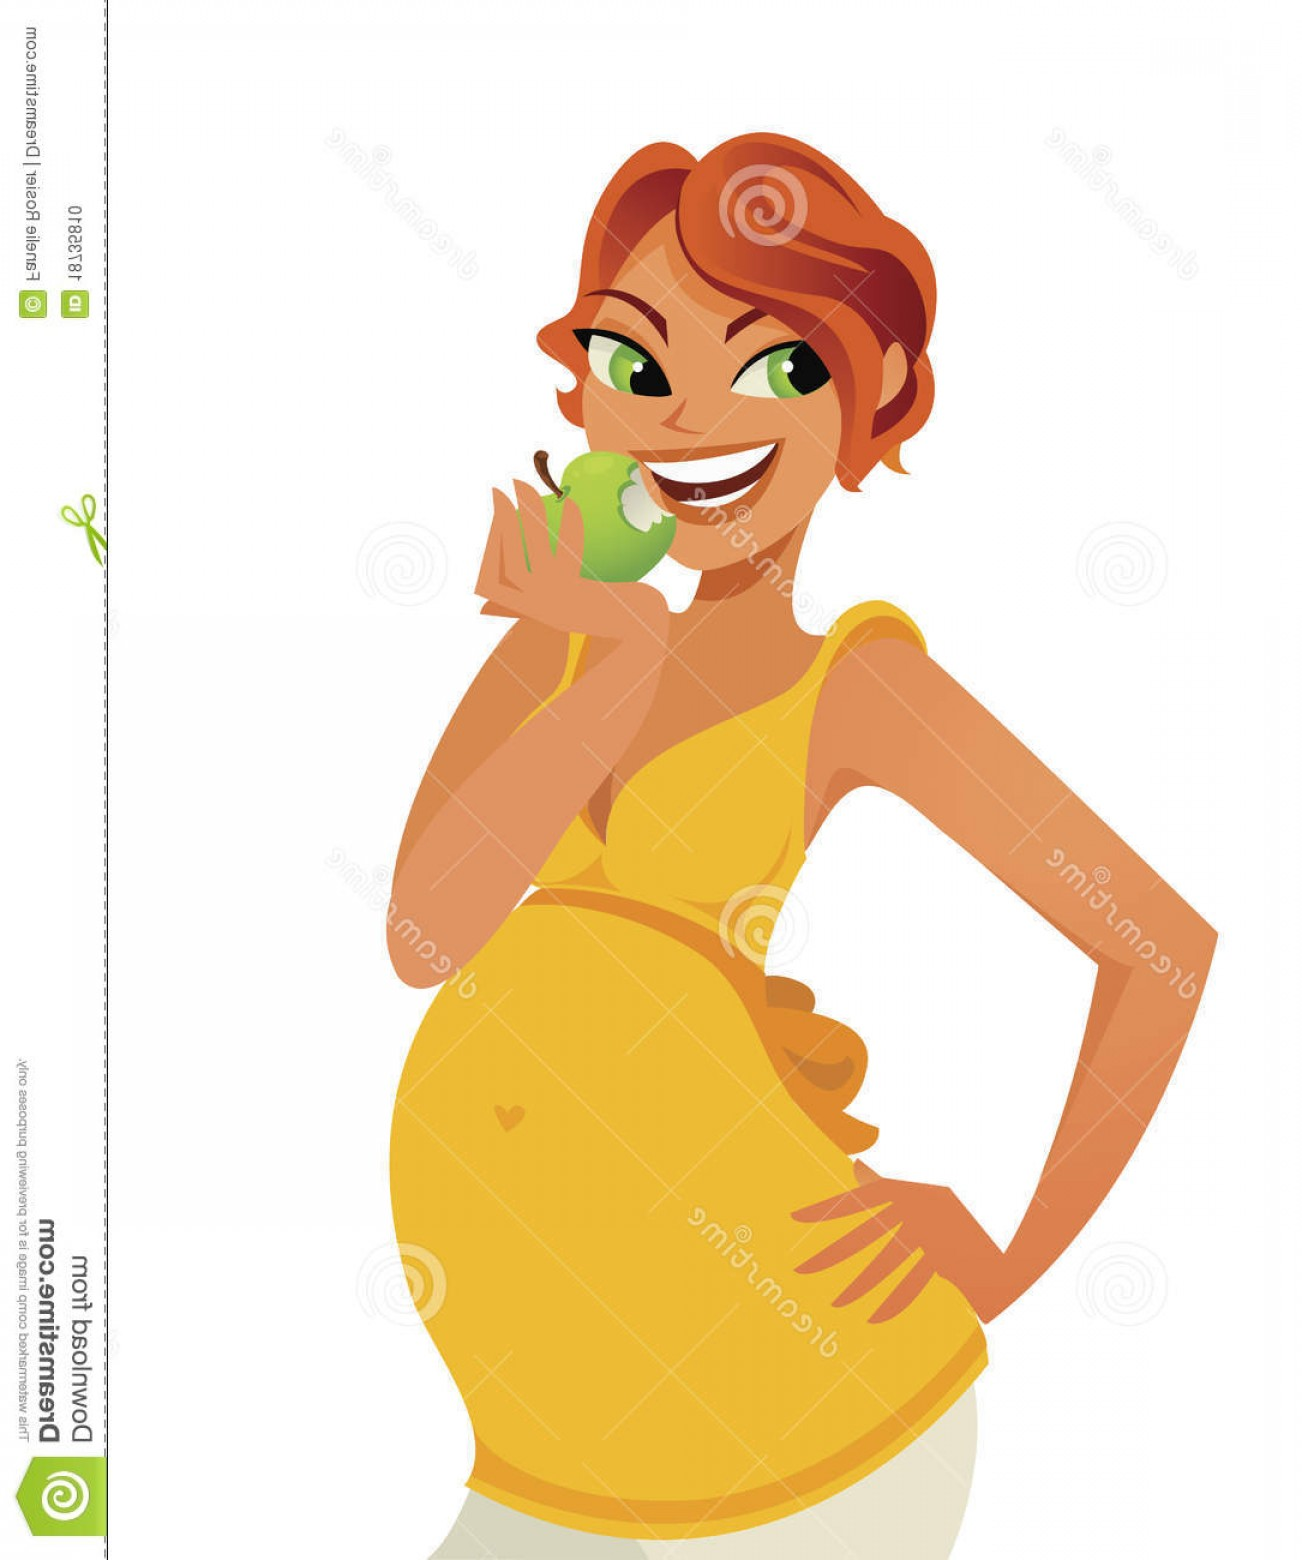 Pregnant Vector Art: Stock Photo Cute Pregnant Healthy Eating Vector Image